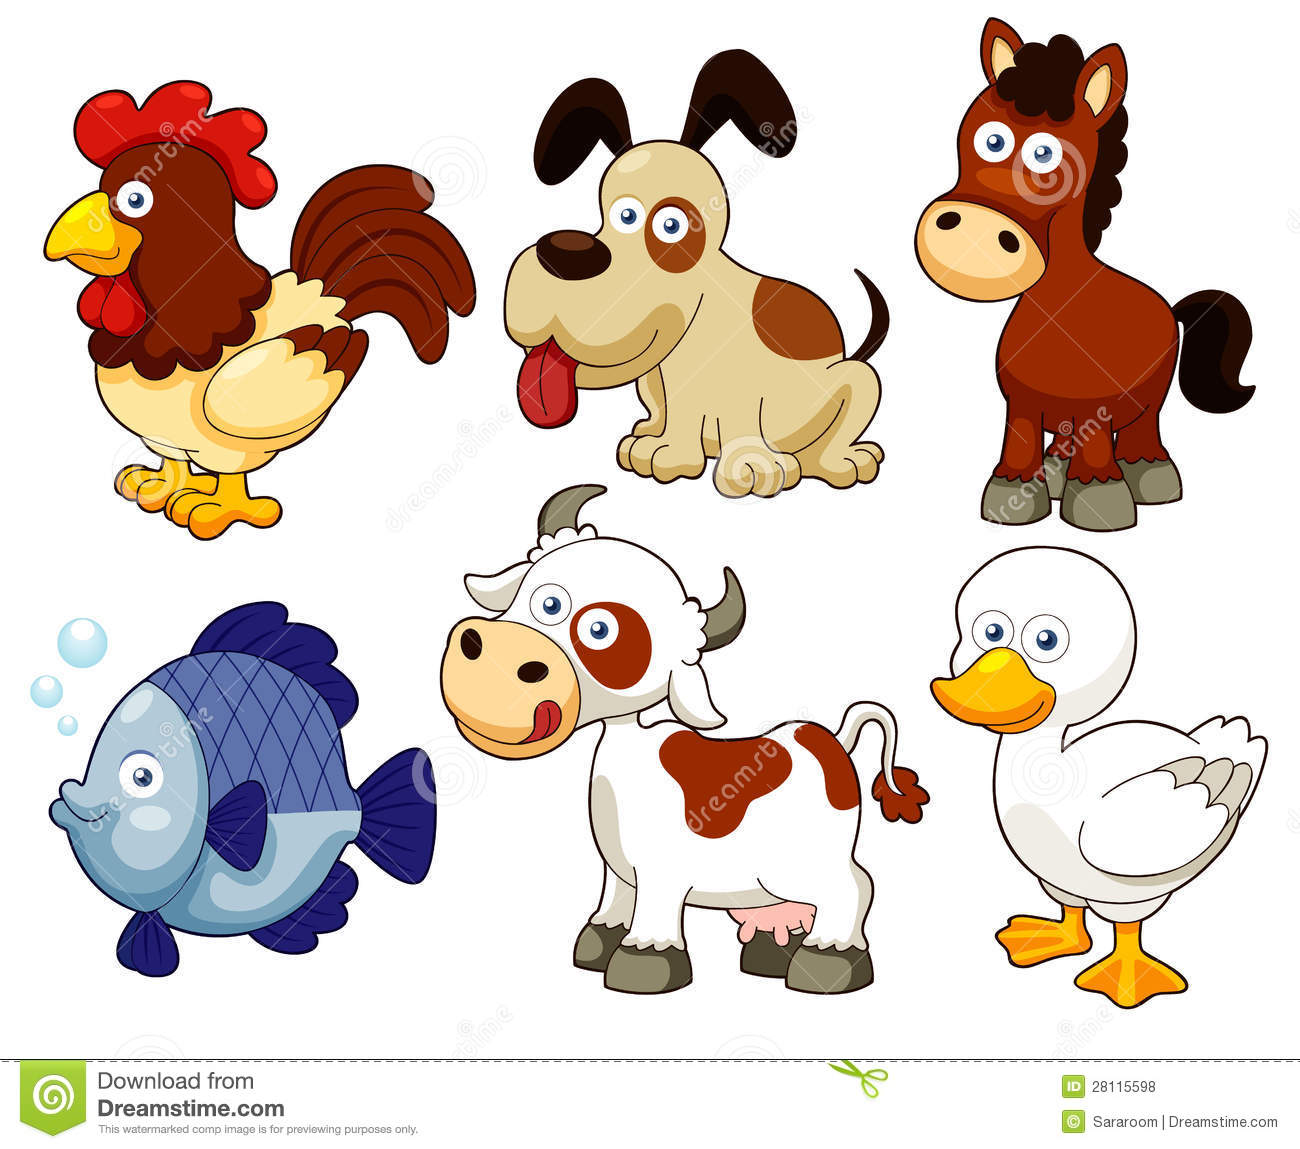 Farm animals cartoon stock vector. Illustration of ...